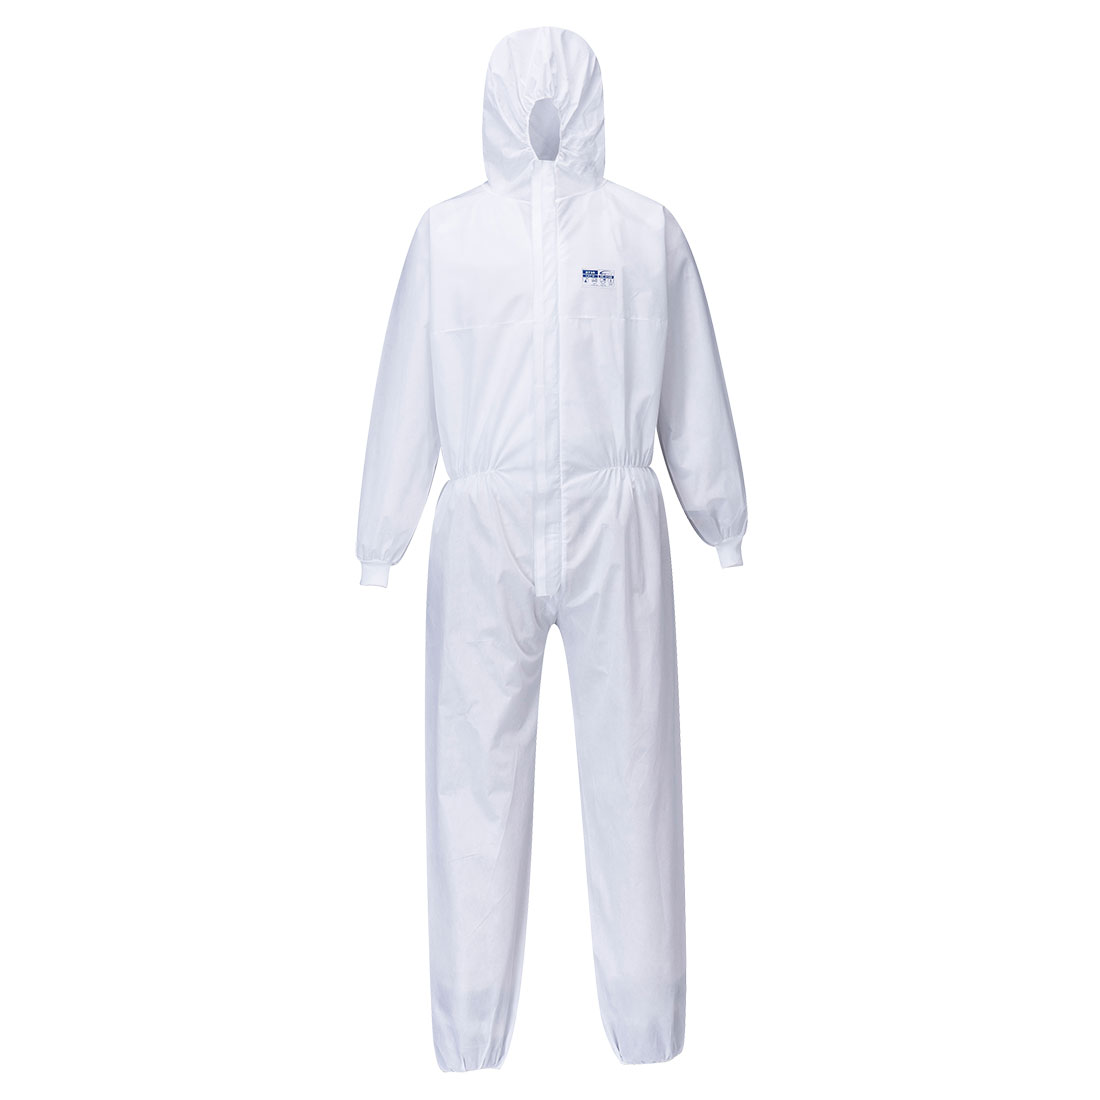 Portwest BizTex SMS Coverall With Knitted Cuff Type 5/6 - ST35